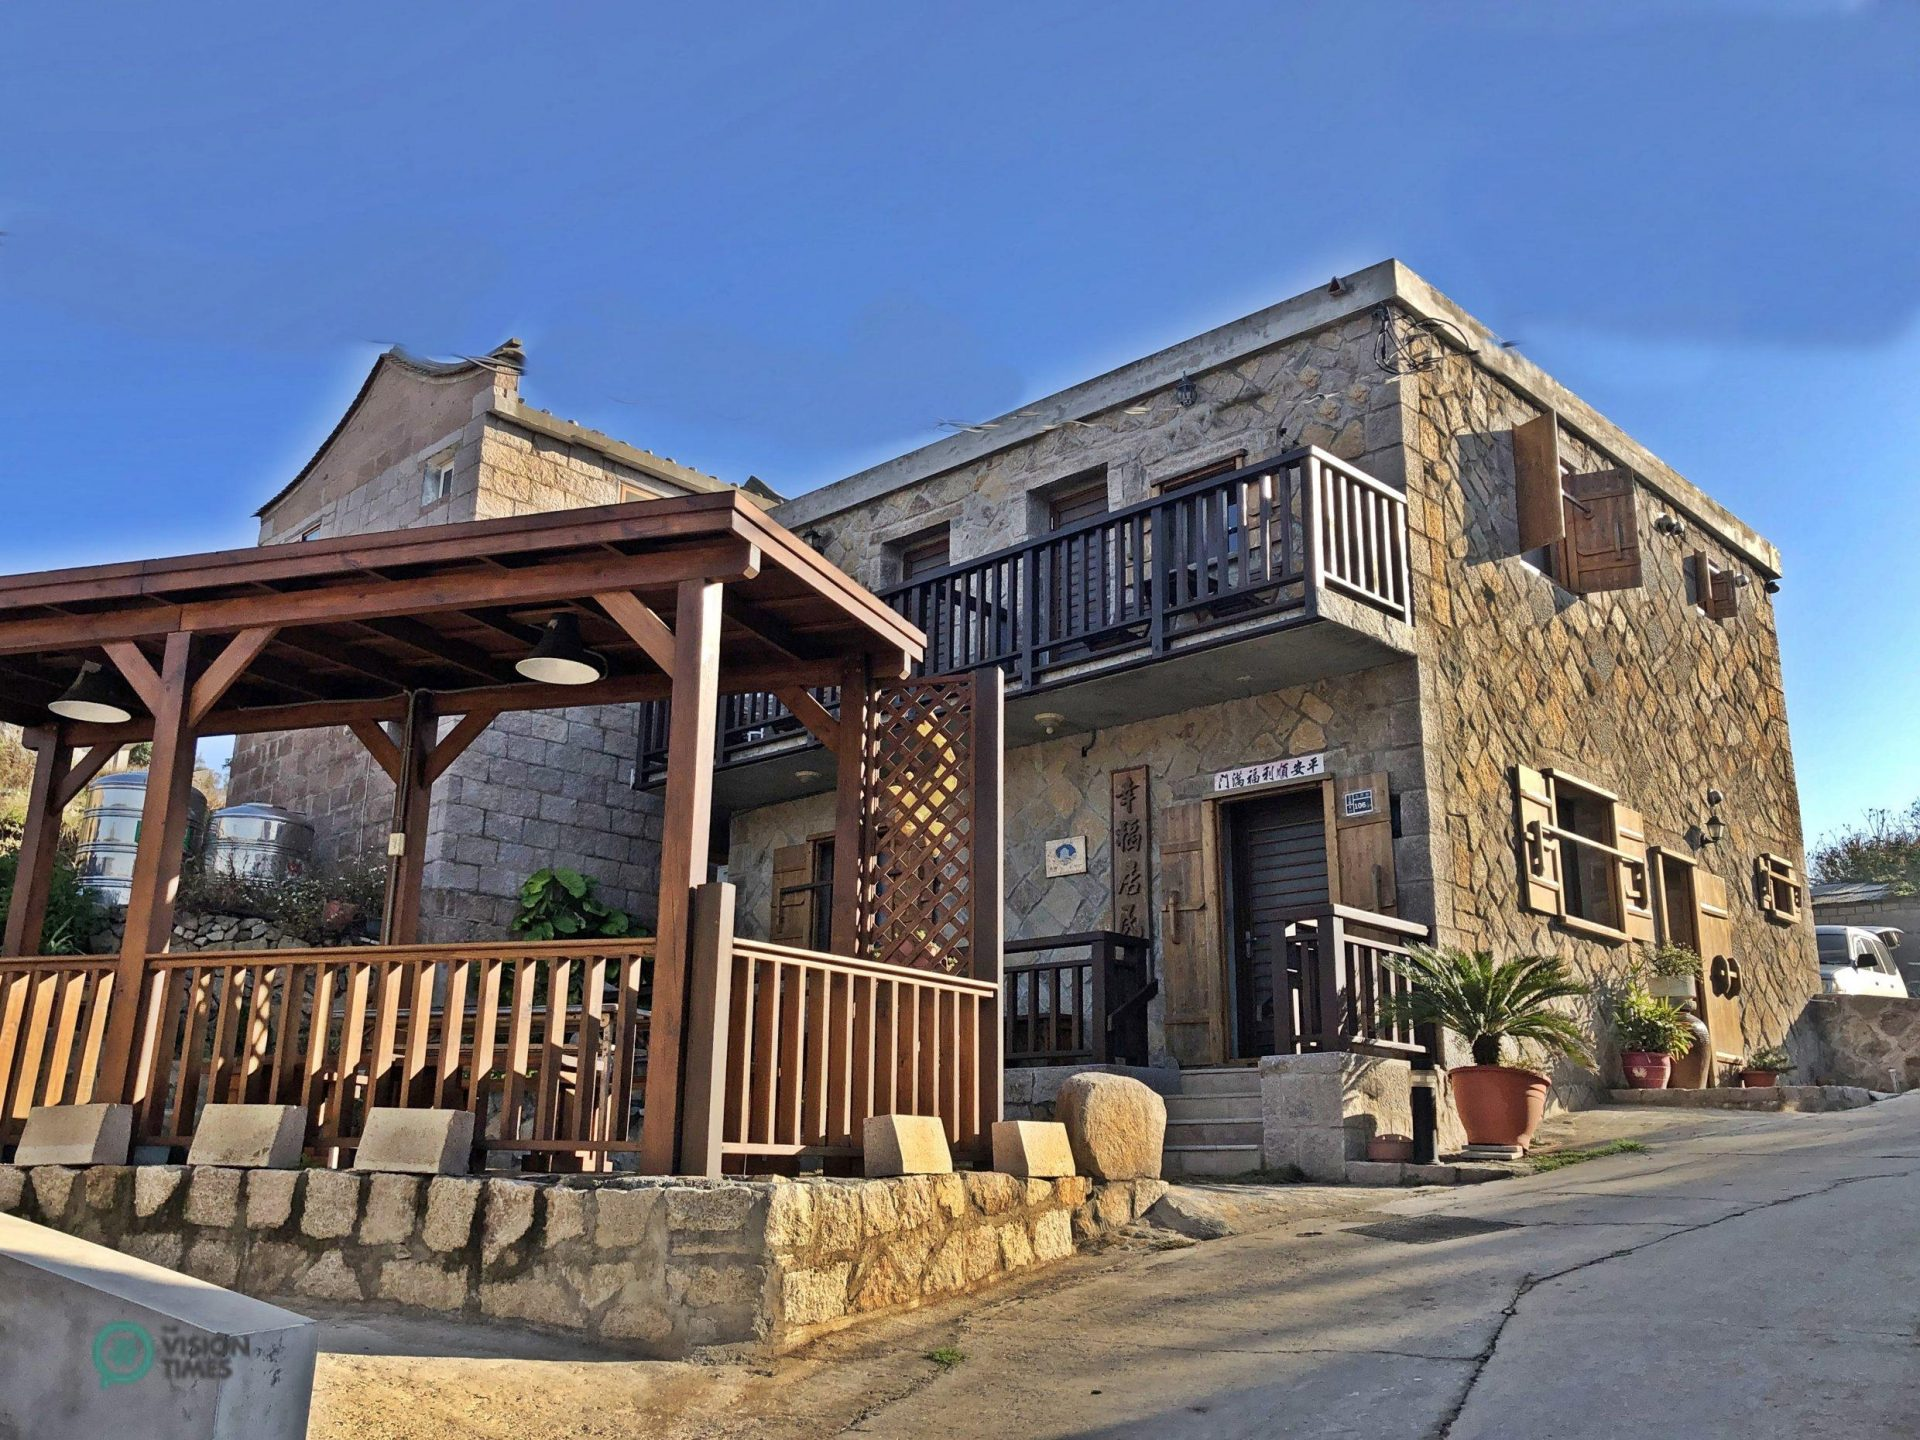 An abandoned stone house in Dongju's Dapu Village has turned into a cozy guesthouse. (Image: Julia Fu / Vision Times)